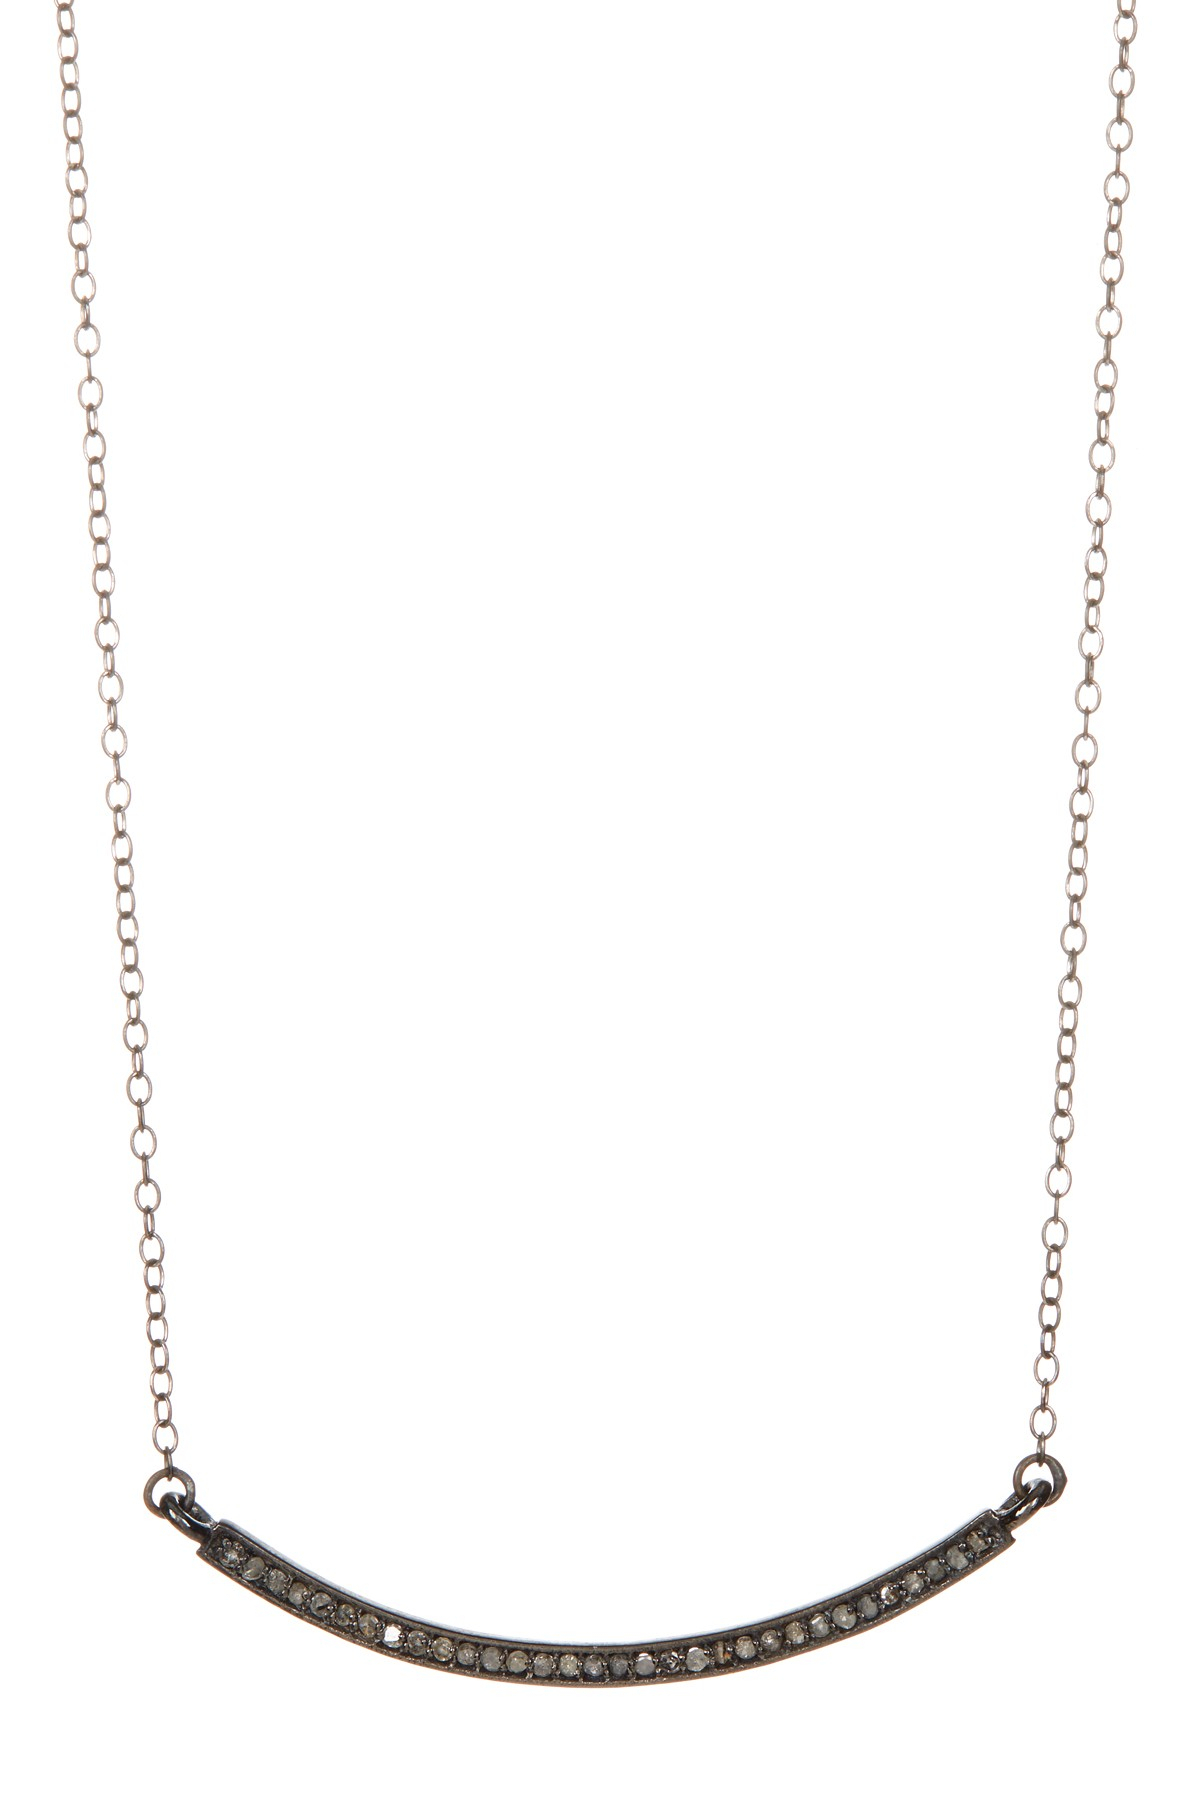 Adornia | Mercer Champagne Diamond Curved Bar Necklace – (View 15 of 25)